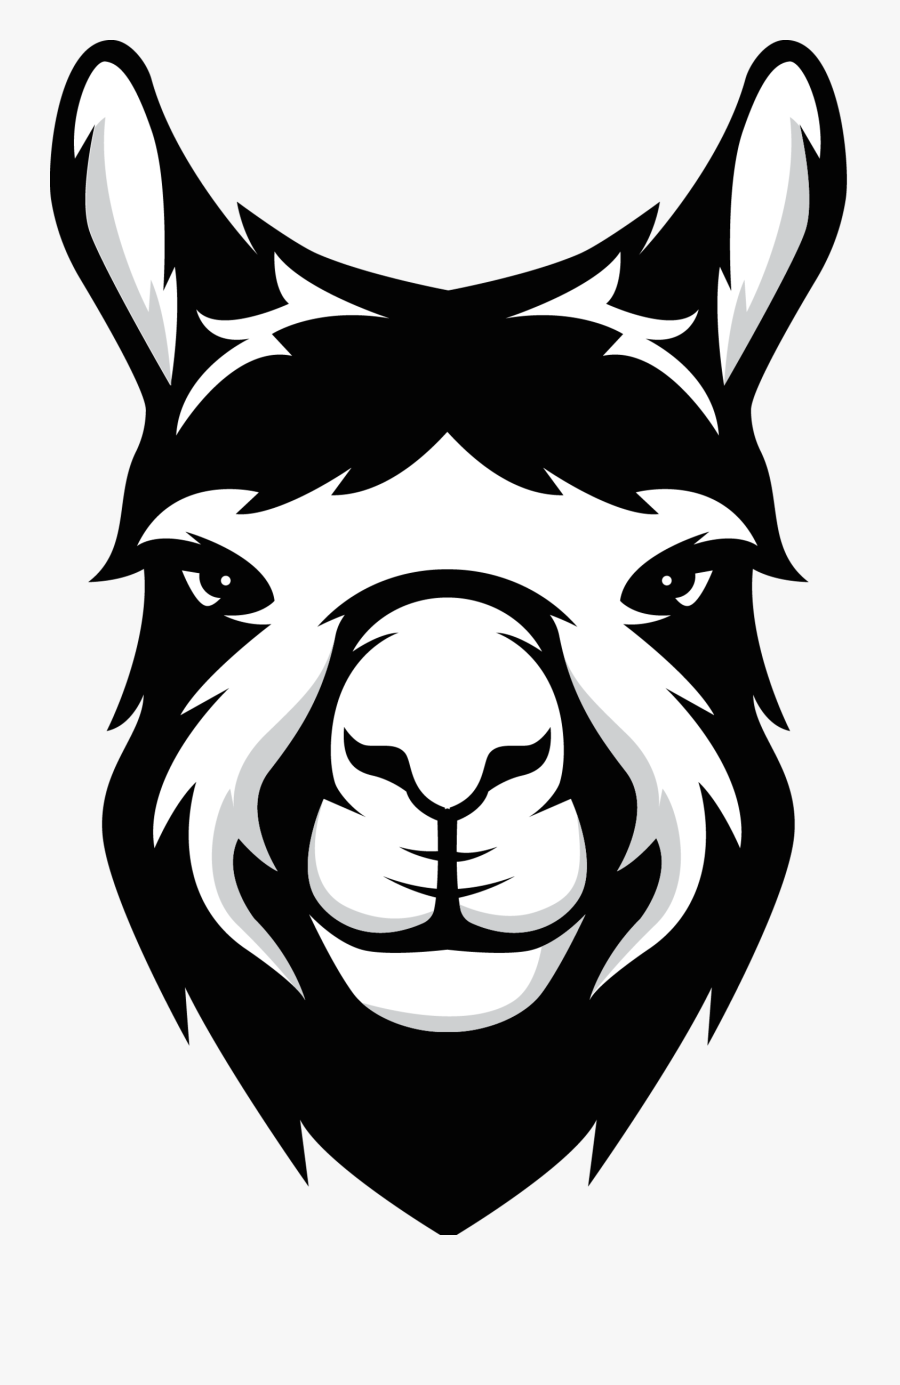 Clip Art Png Black For - Llama Face Clipart Black And White, Transparent Clipart